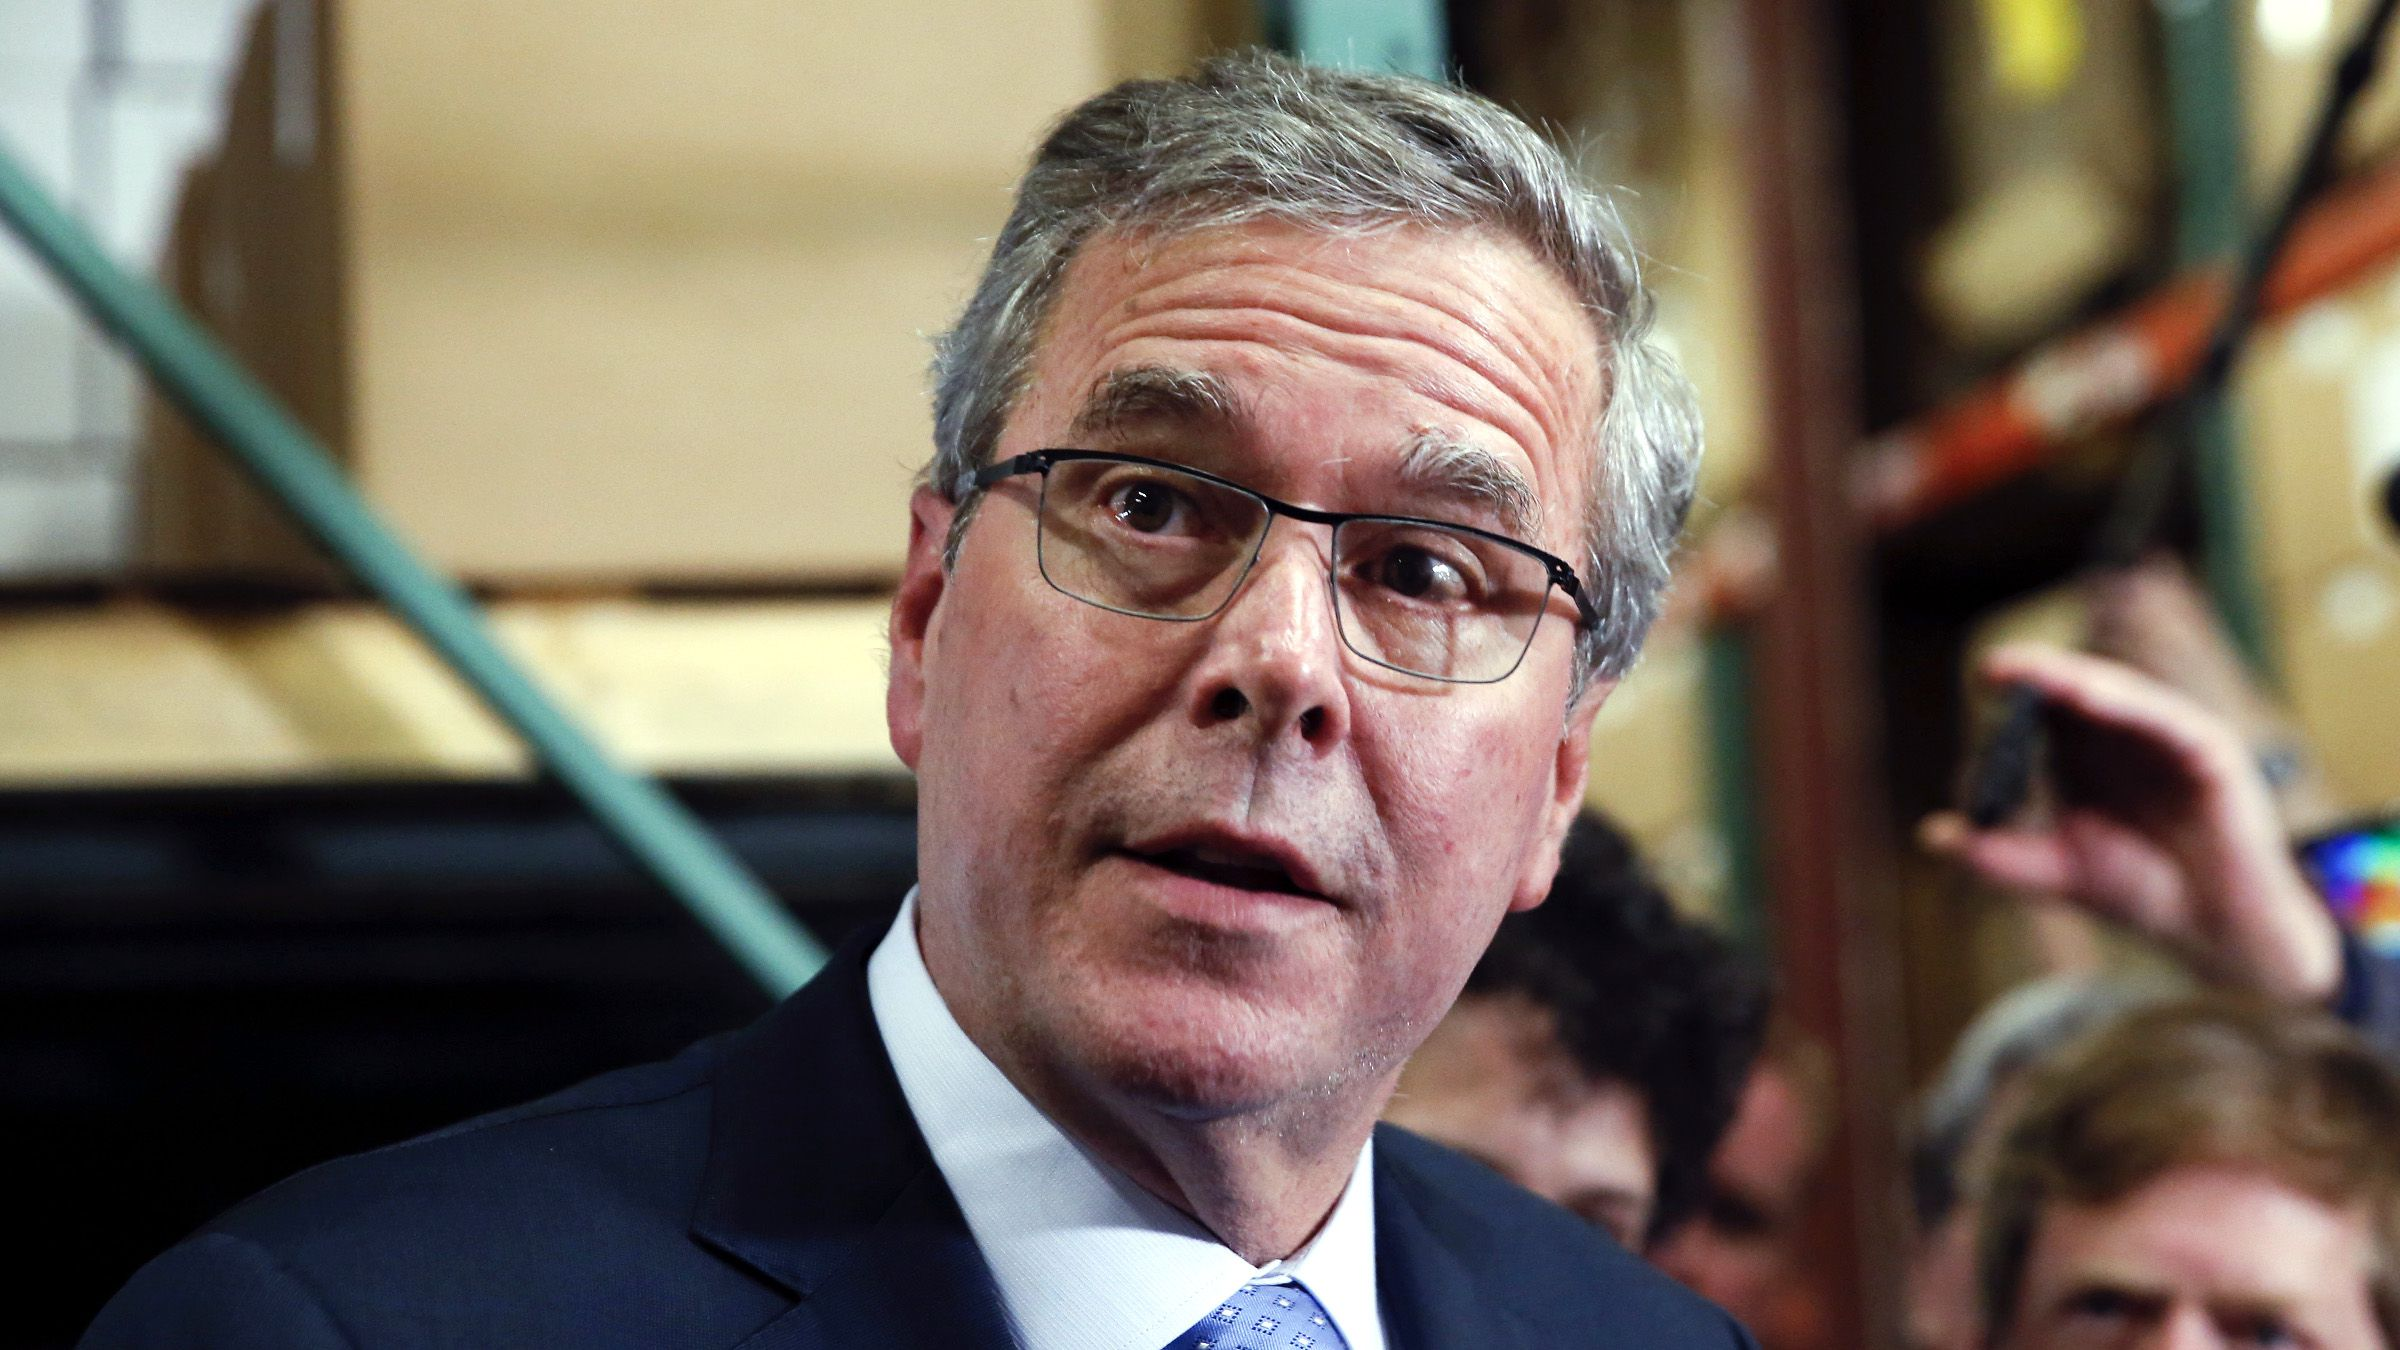 Former Florida Governor Jeb Bush talks to the media after visiting Integra Biosciences during a campaign stop in Hudson, New Hampshire March 13, 2015.